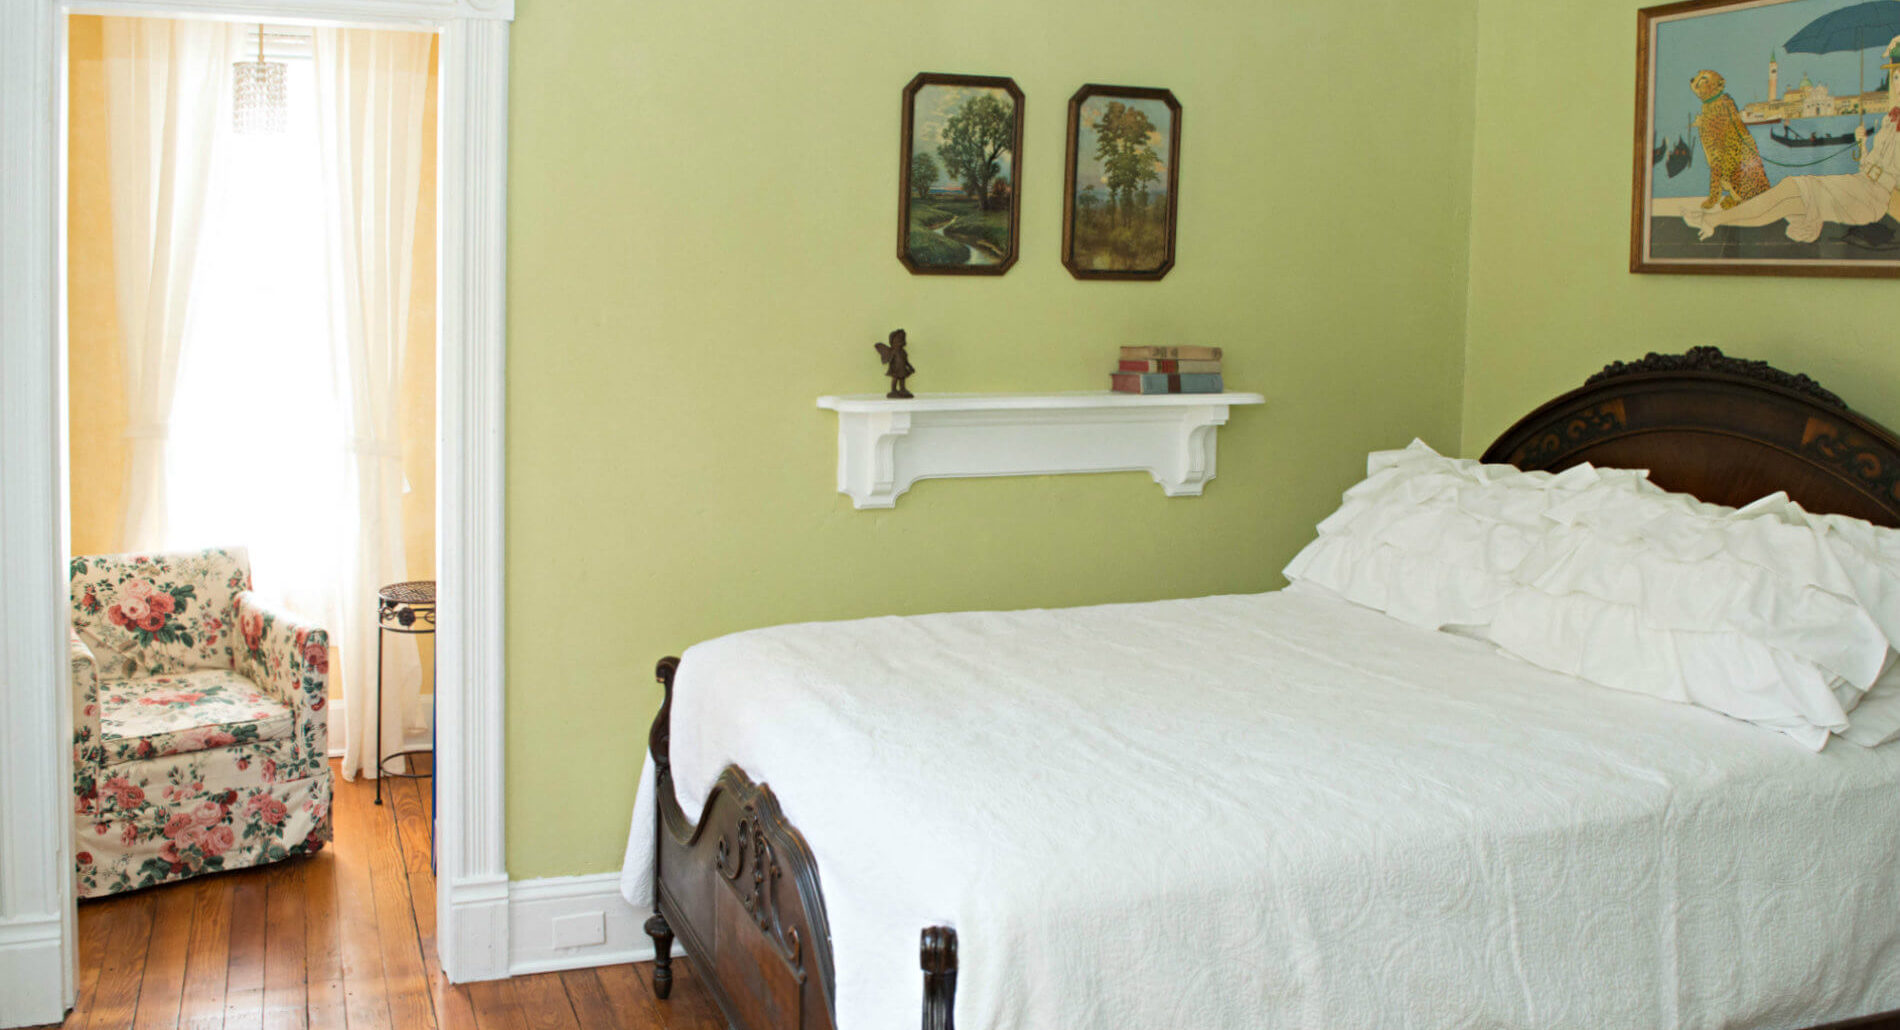 Light green room with white bedding, hardwood flooring, doorway to a yellow sitting room with a floral cushioned chair